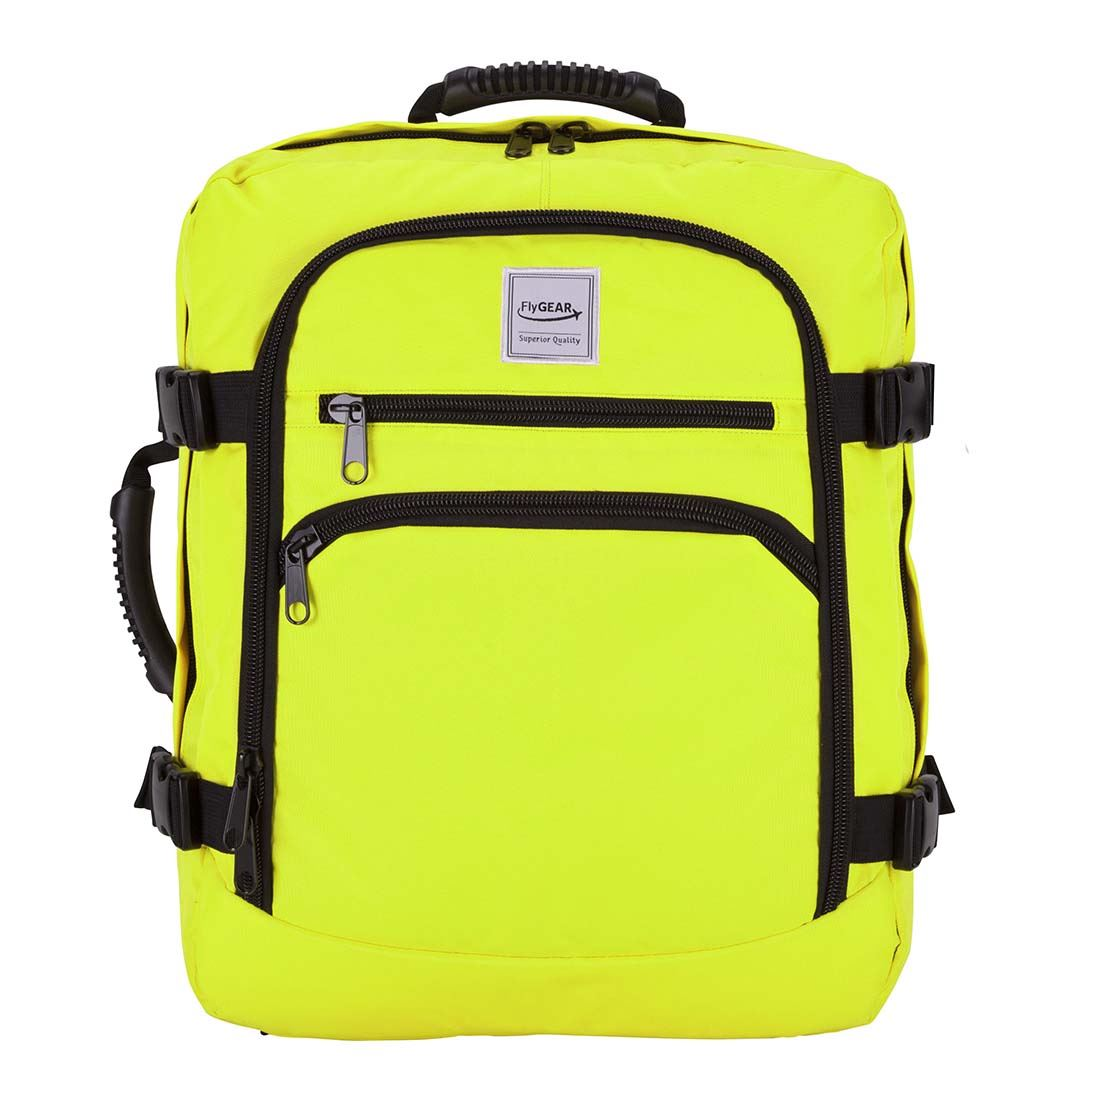 Cabin Approved Flight Backpack Rucksack Hand Luggage